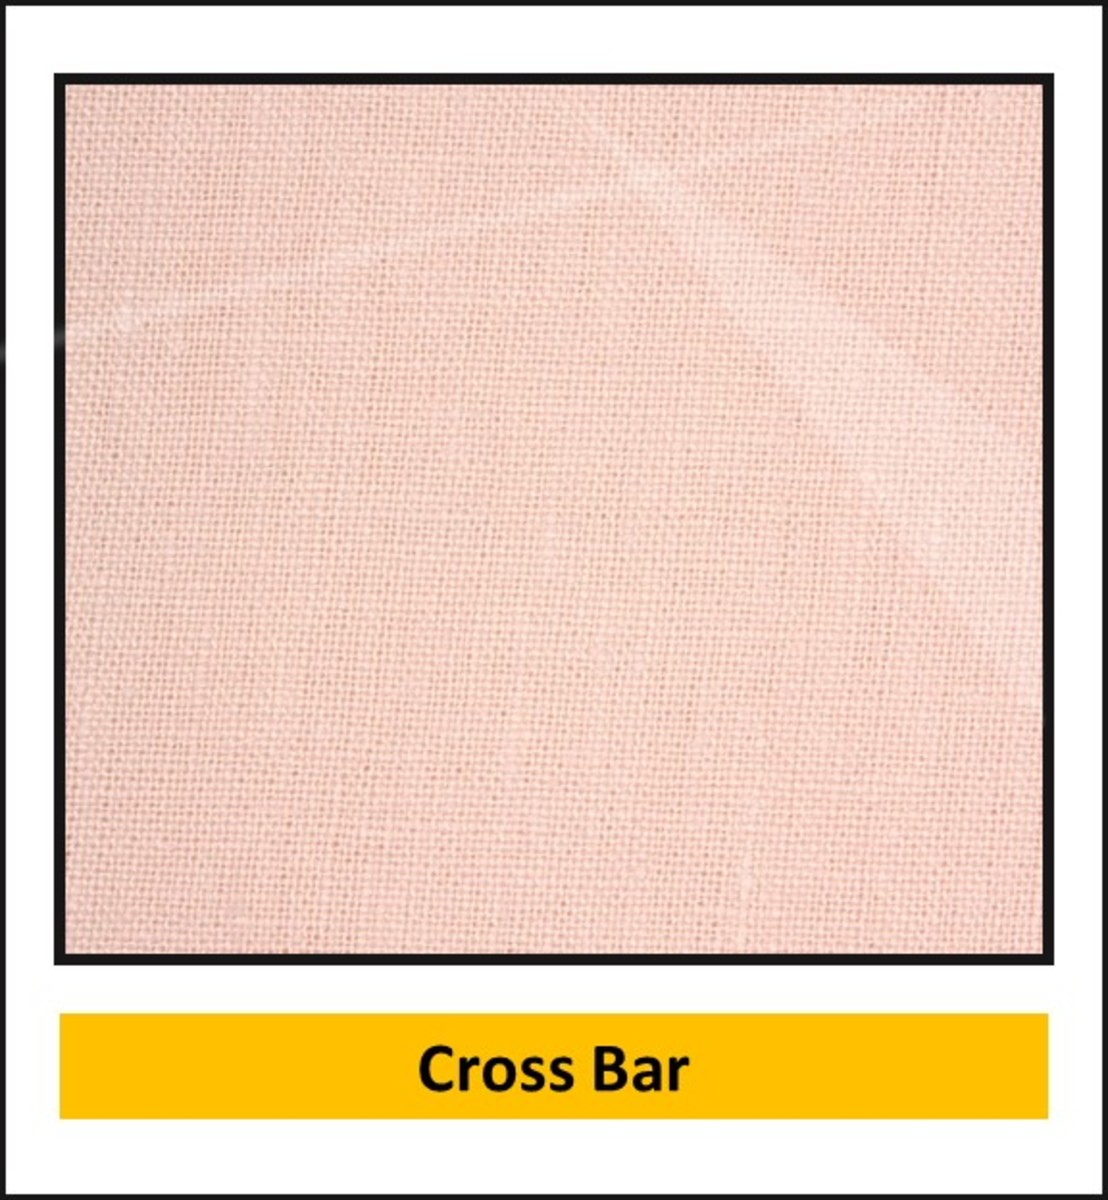 Cross Bar